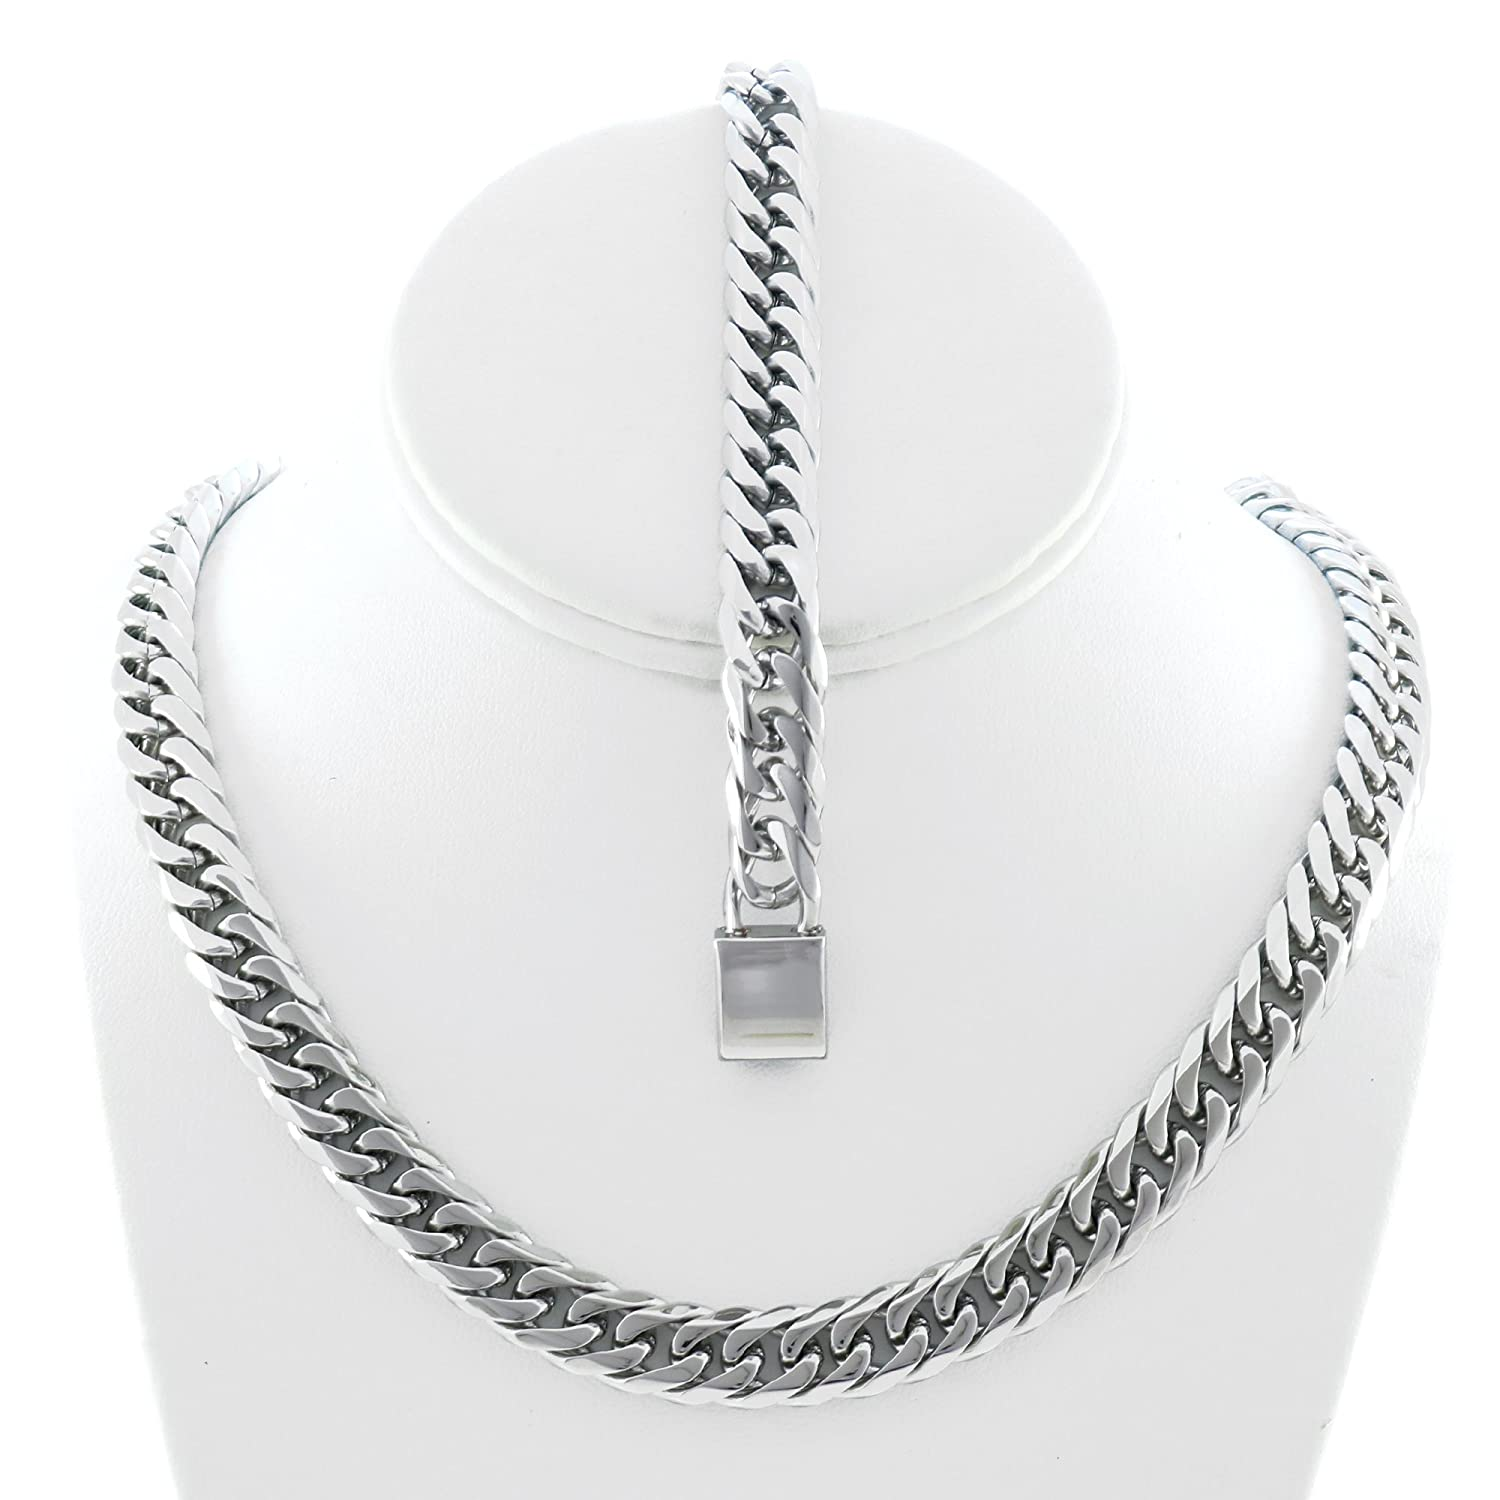 Solid Silver Finsh Stainless Steel 12mm Thick Miami Cuban Link Chain Necklace & Bracelet Set 24''